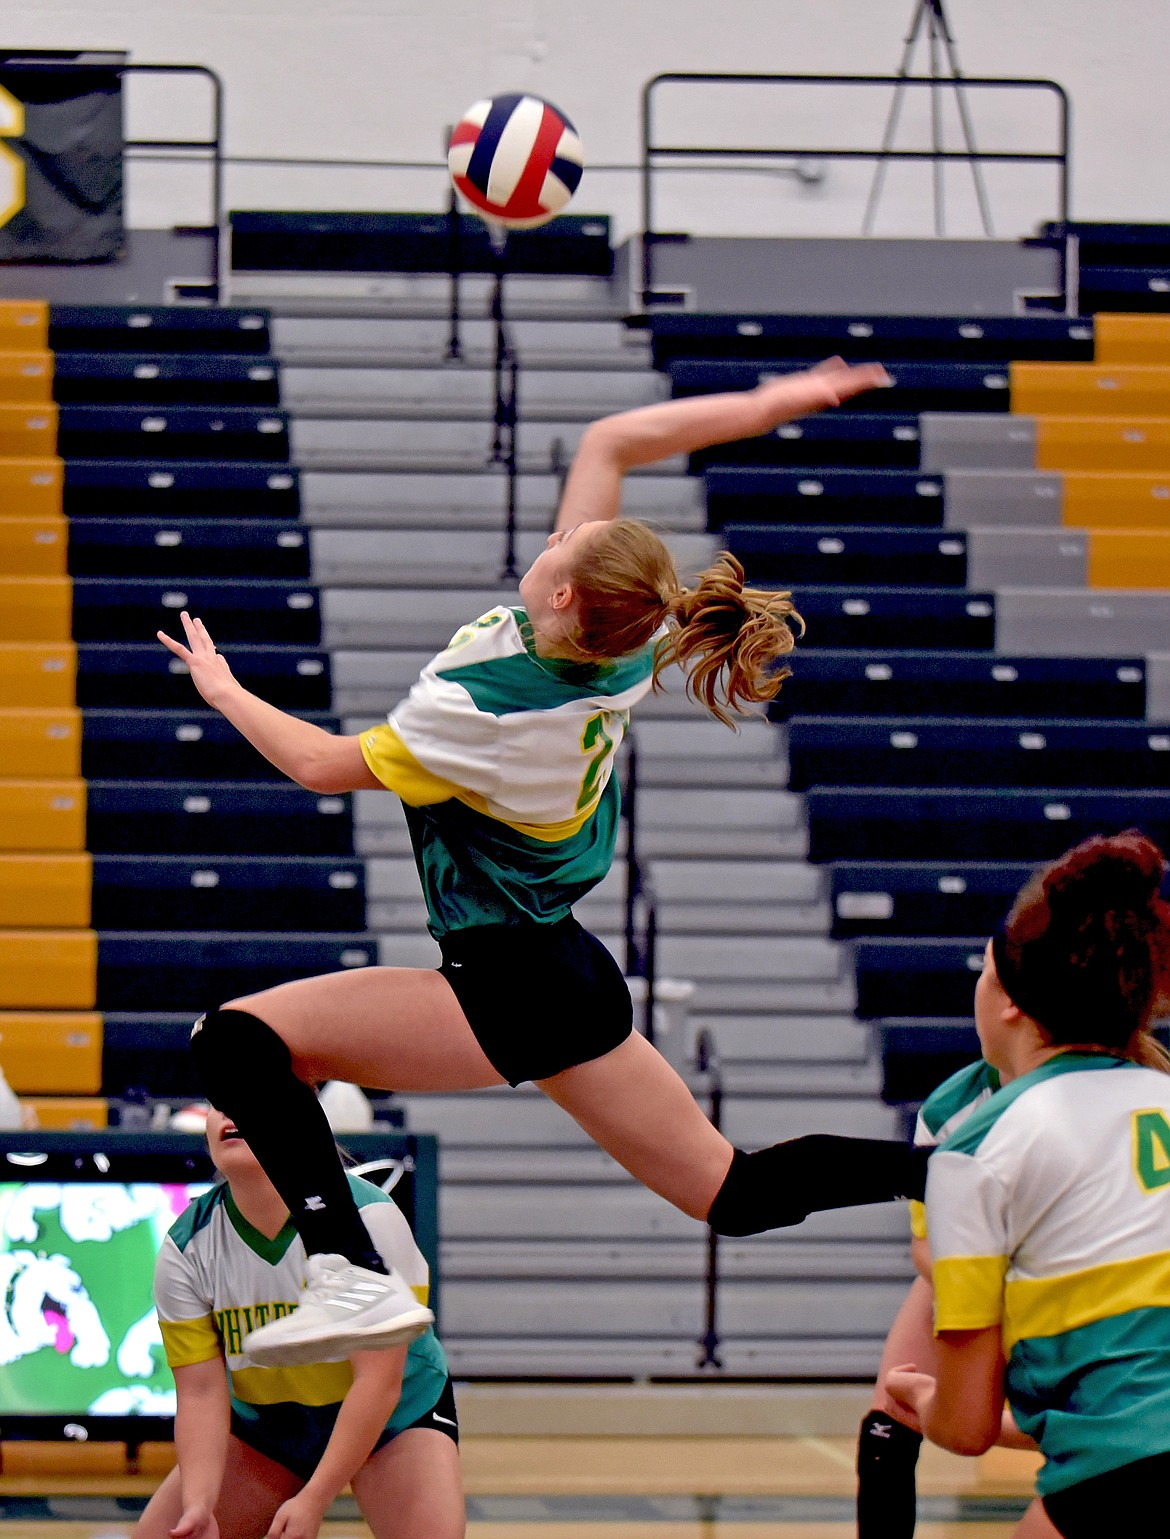 Whitefish freshman Brooke Zetooney lines up for a massive spike in the third set as Whitefish defeated Libby 3-0 in the Bulldogs Homecoming game on Thursday, Oct. 1. (Whitney England/Whitefish Pilot)